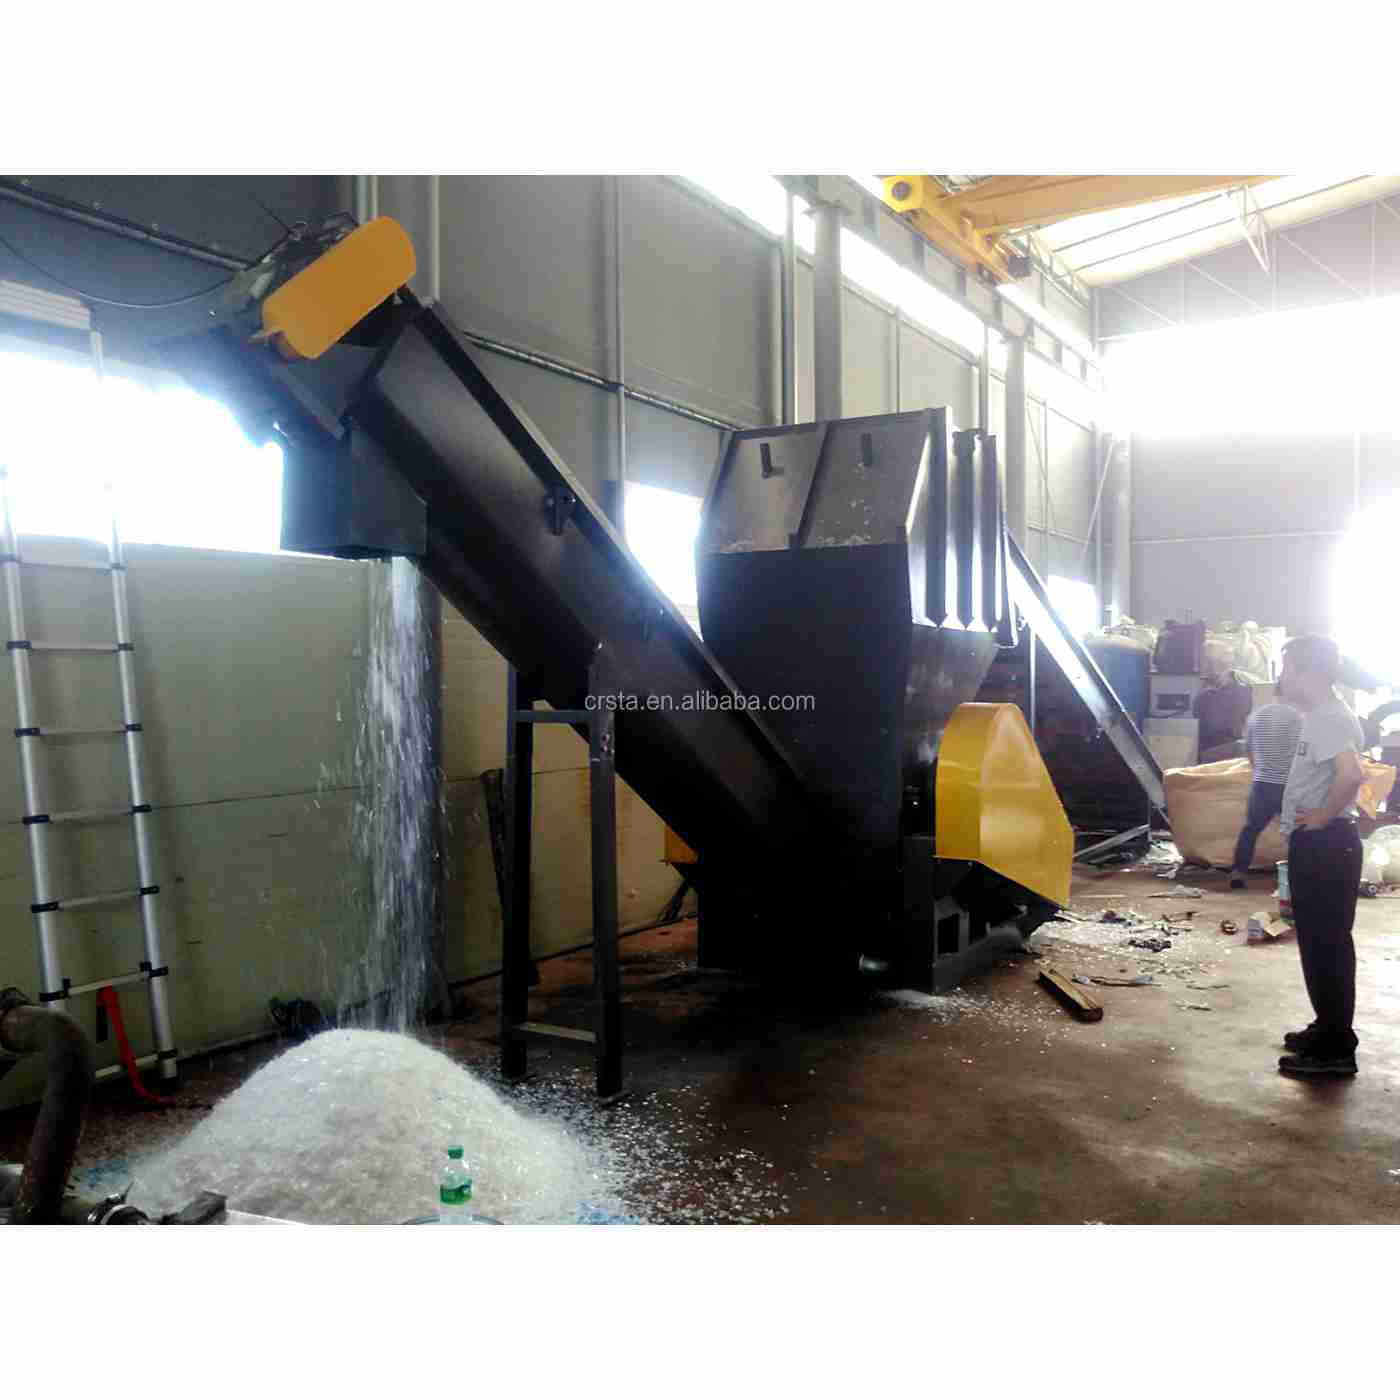 PC Sheet Plastic crushing /PC bottle grinding machine / Plastic PC Automobile Lampshade crusher machine Price